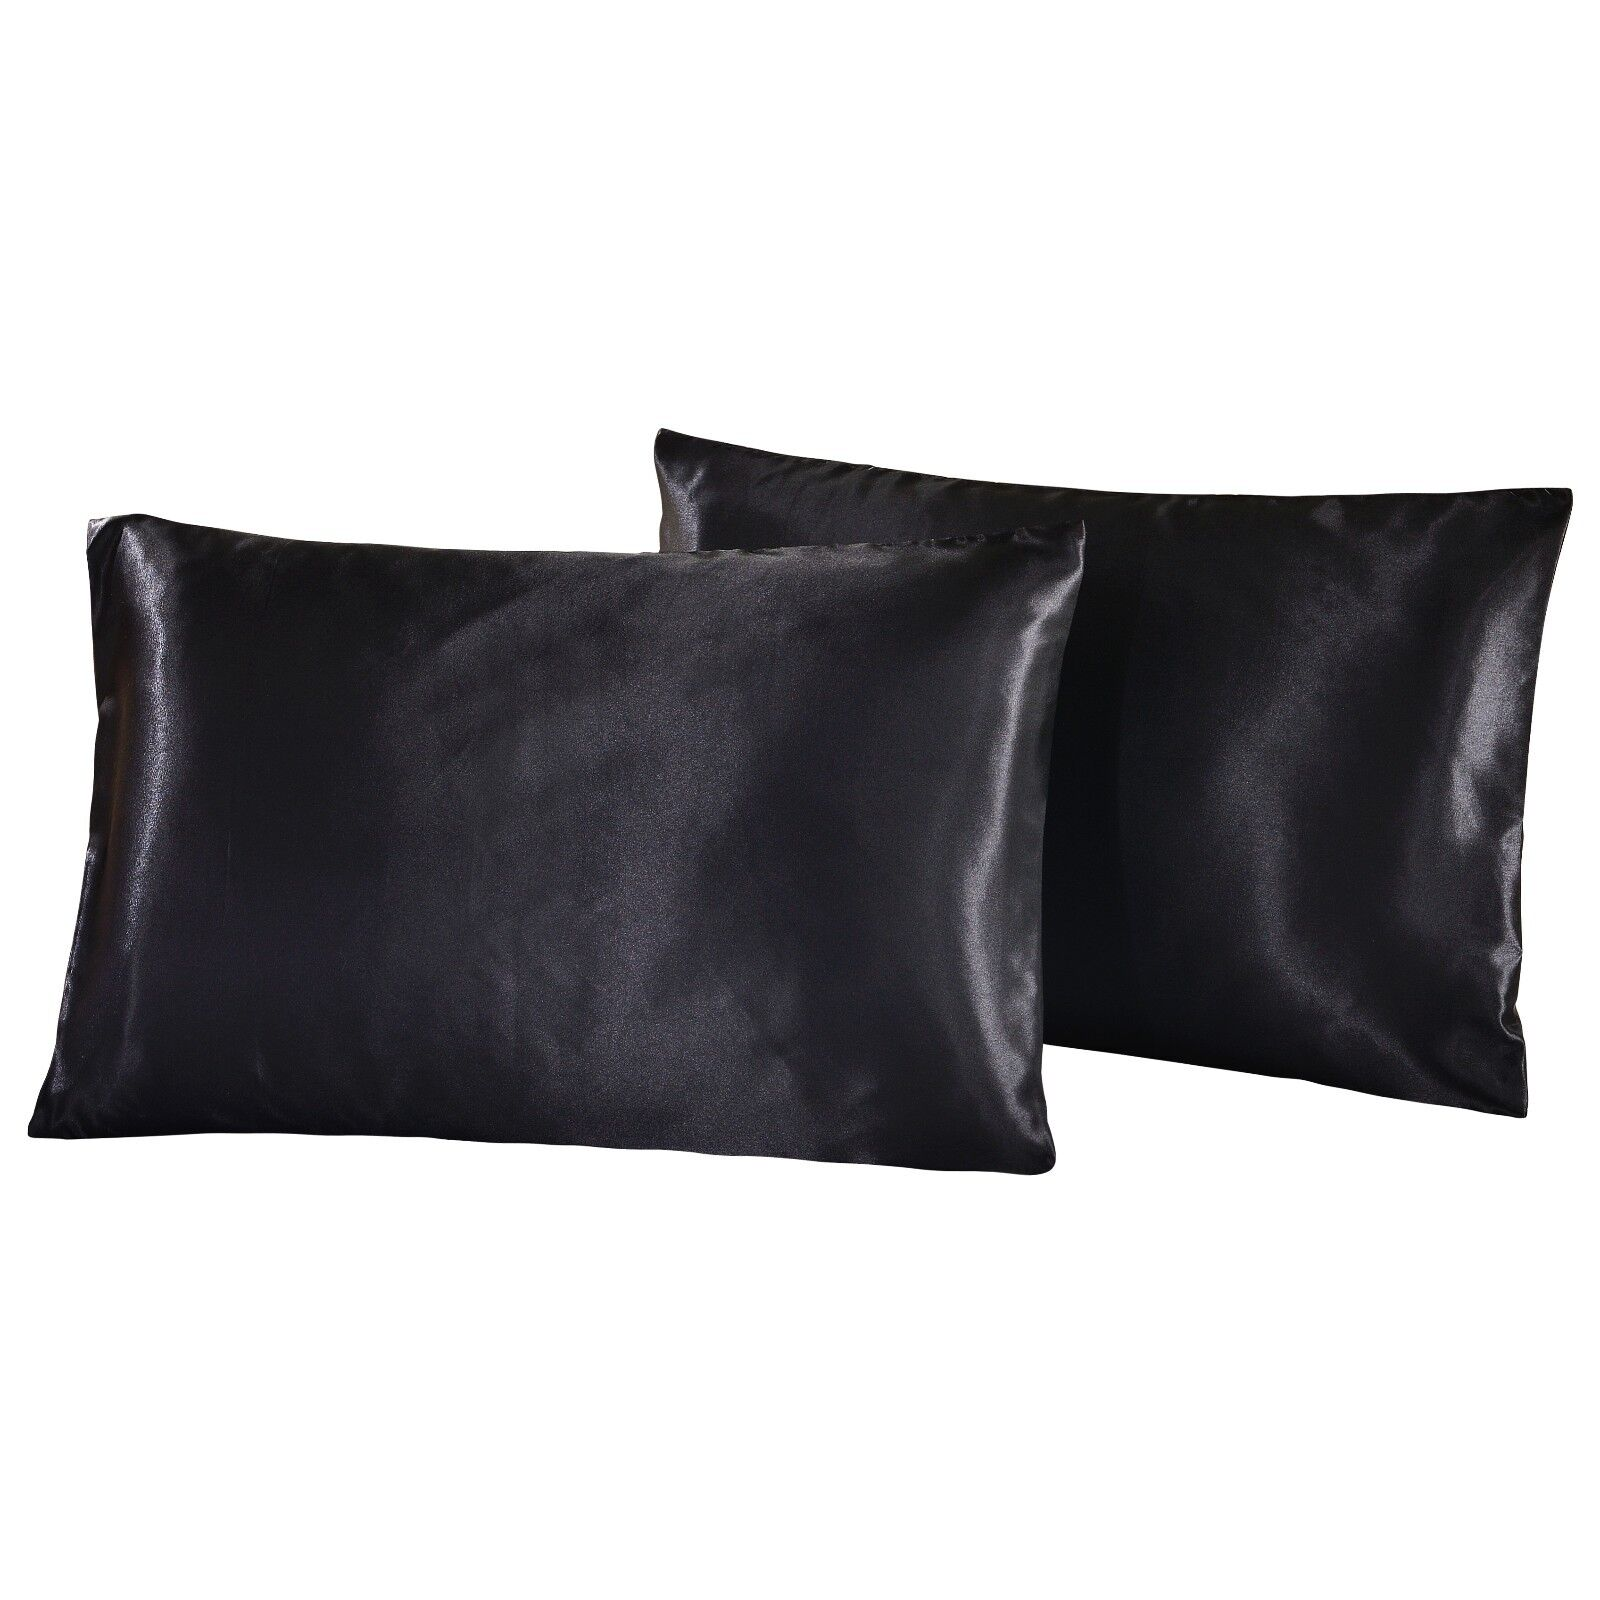 Satin Silky Pack of 2 Pillowcases Pillow Protectors Bed Stan